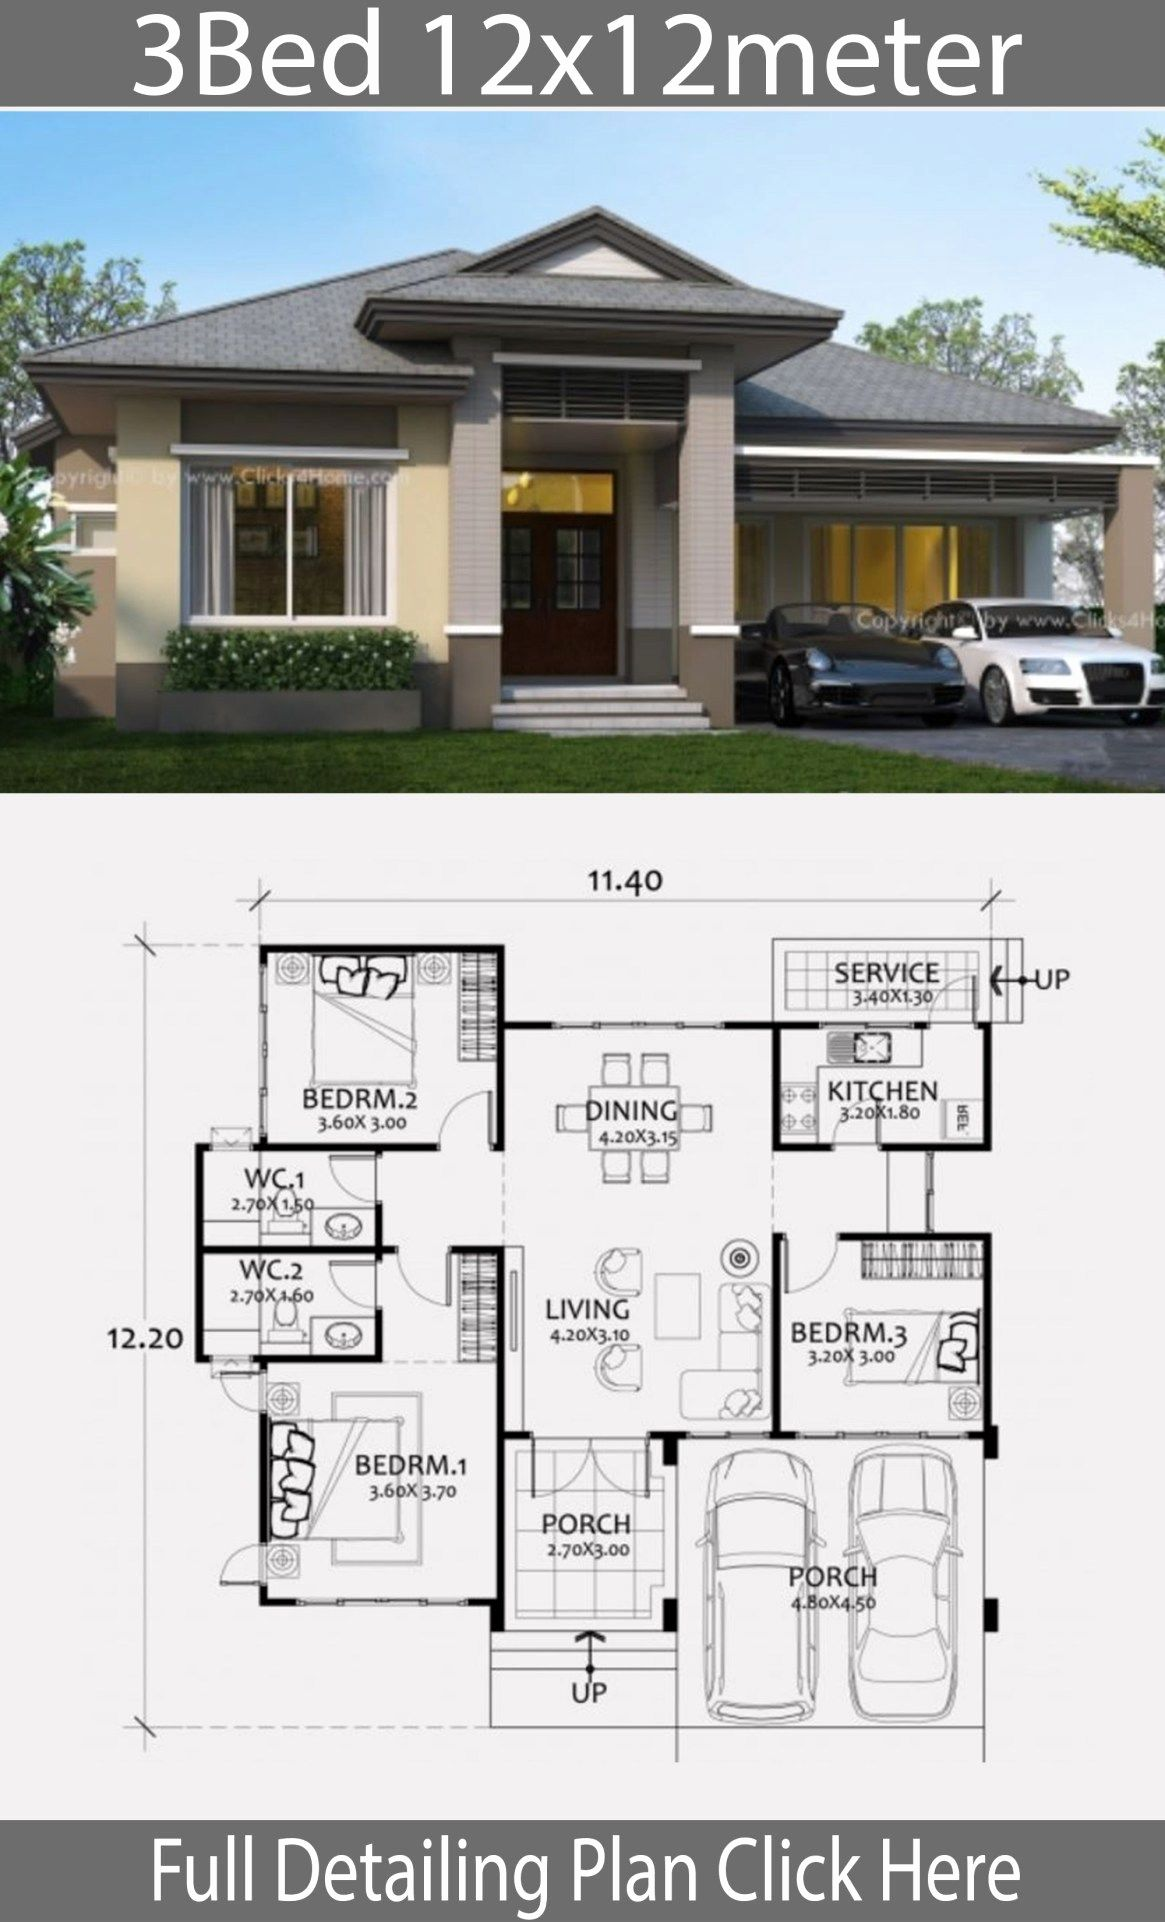 Contemporary Bungalow House Plans Luxury Home Design Plan 12x12m With 3 Bedrooms Arsitektur Rumah Rumah Indah Denah Rumah